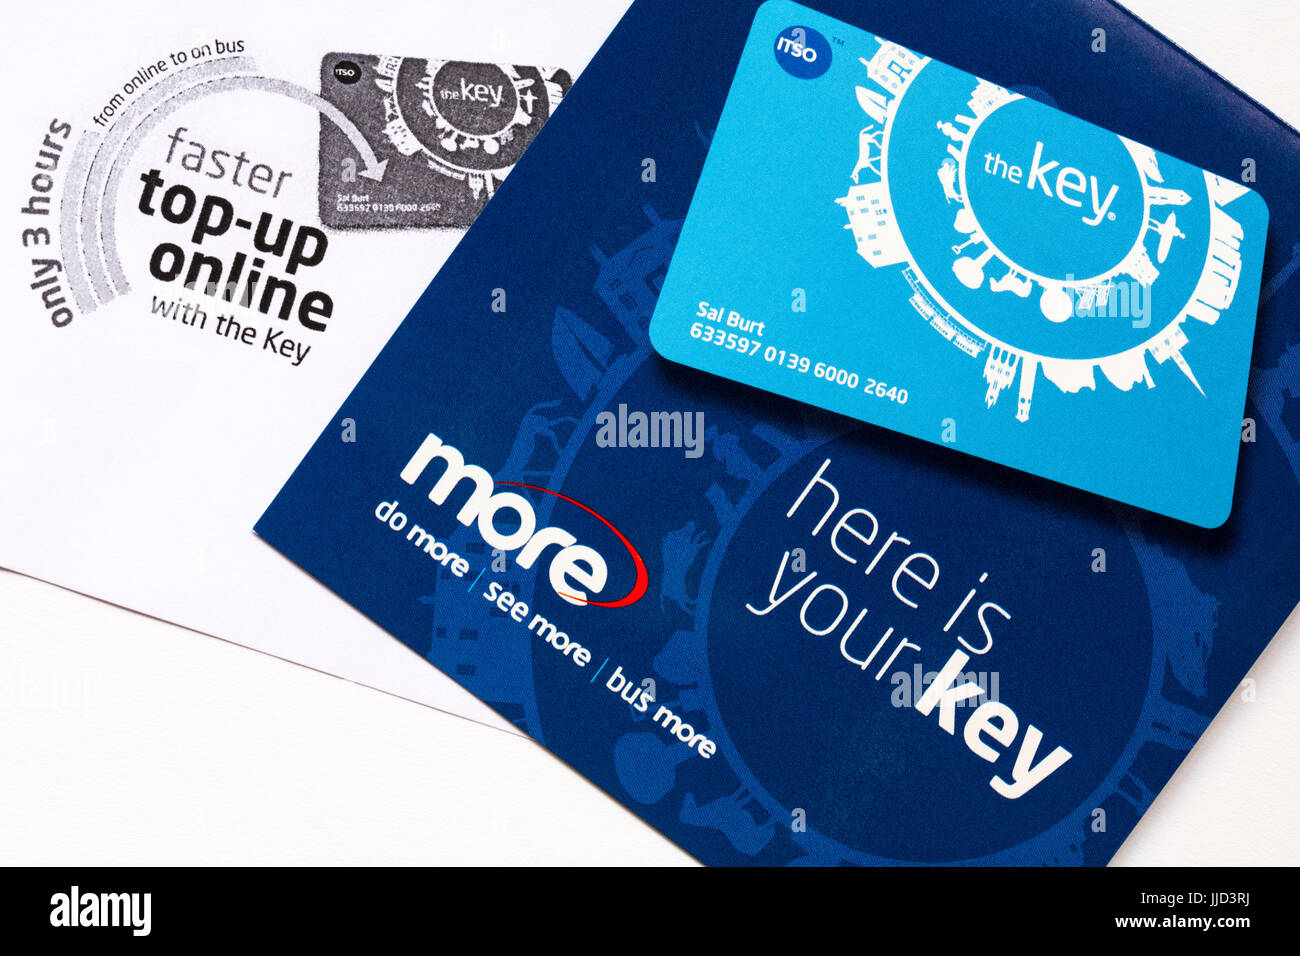 More buses the key smartcard to purchase bus tickets online in advance and get discounts - Stock Image